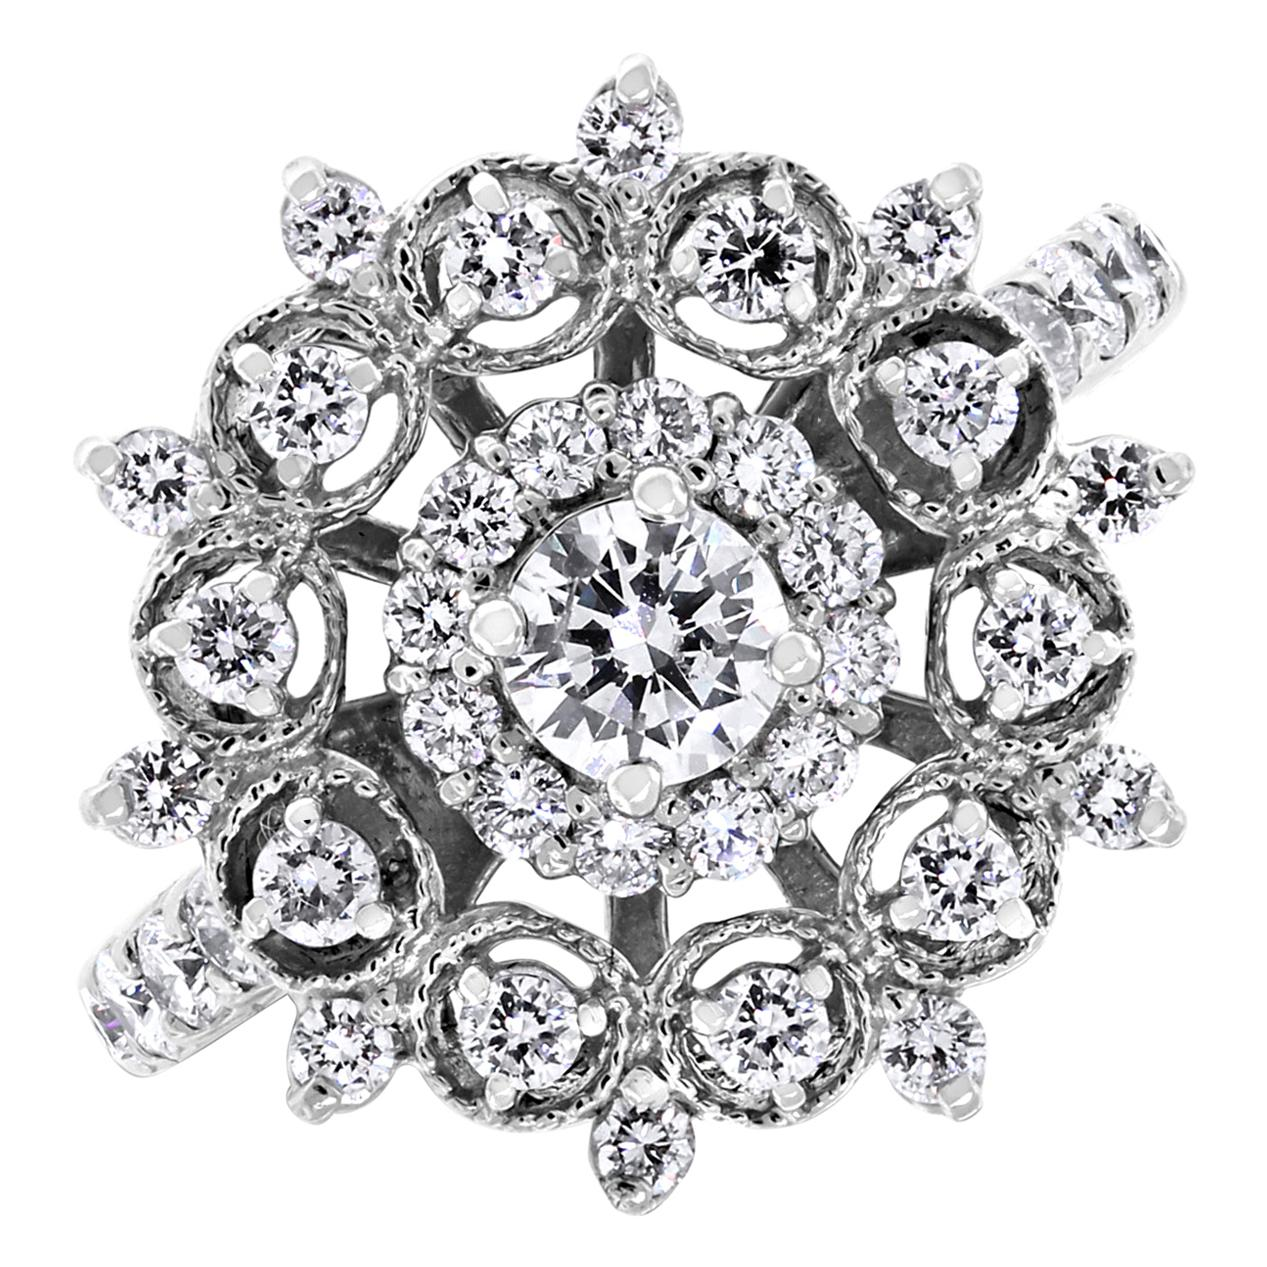 Beauvince Snowflakes Diamond Ring in White Gold